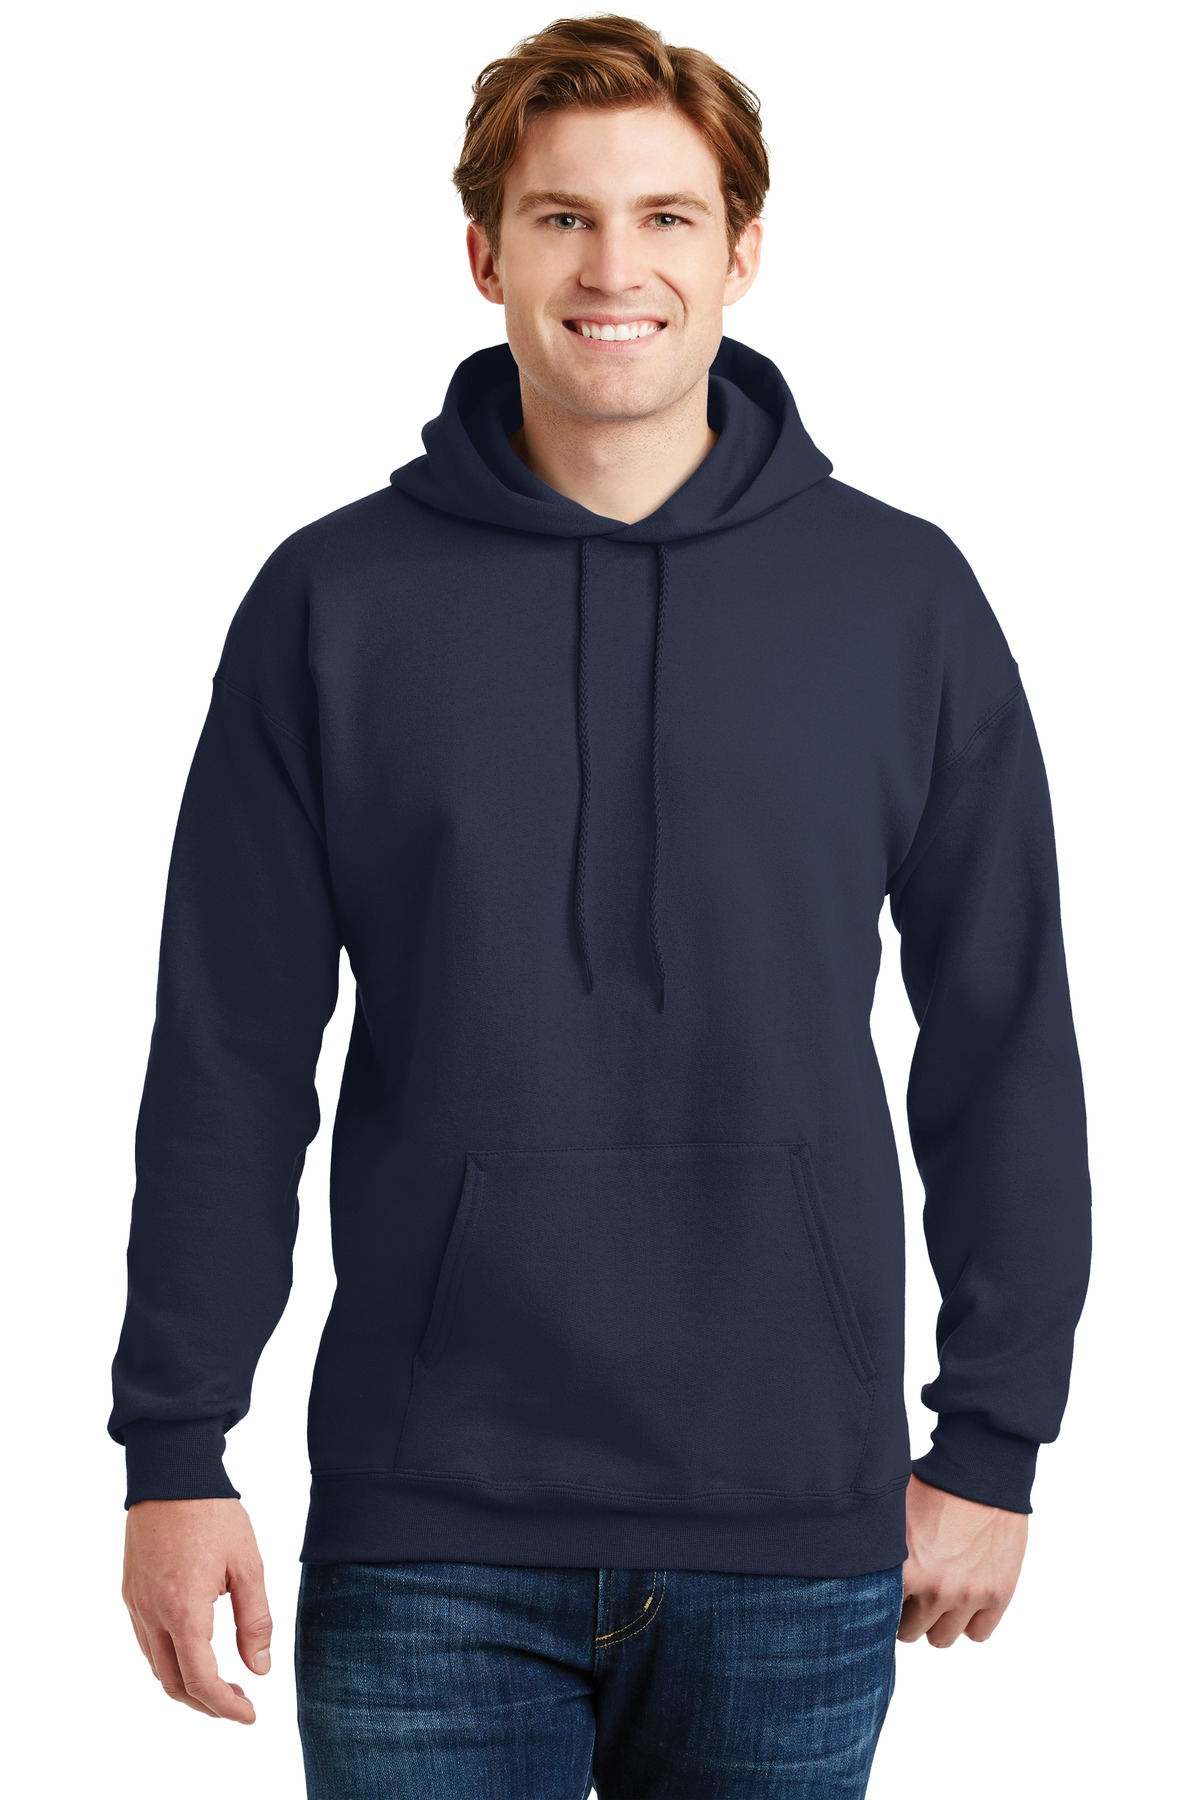 Hanes ®  Ultimate Cotton ®  - Pullover Hooded Sweatshirt.  F170 - Navy